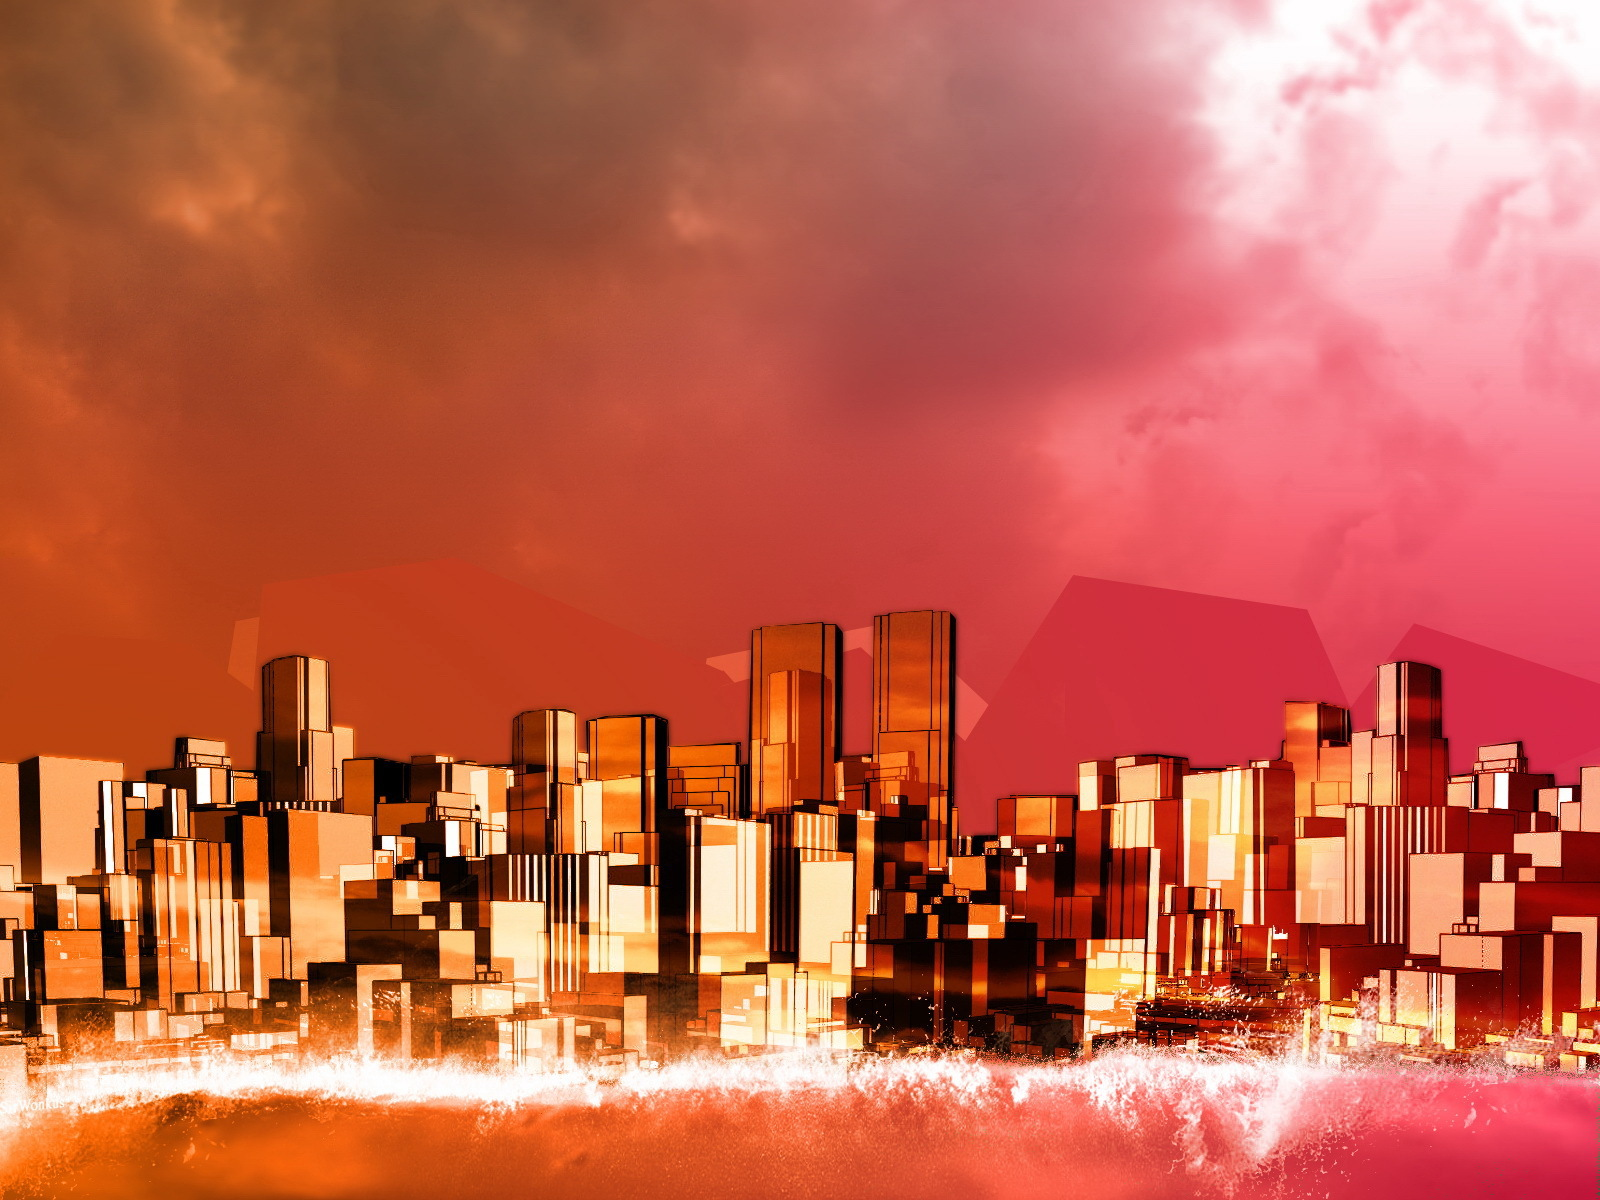 abstract fantasy City artwork HD Wallpaper